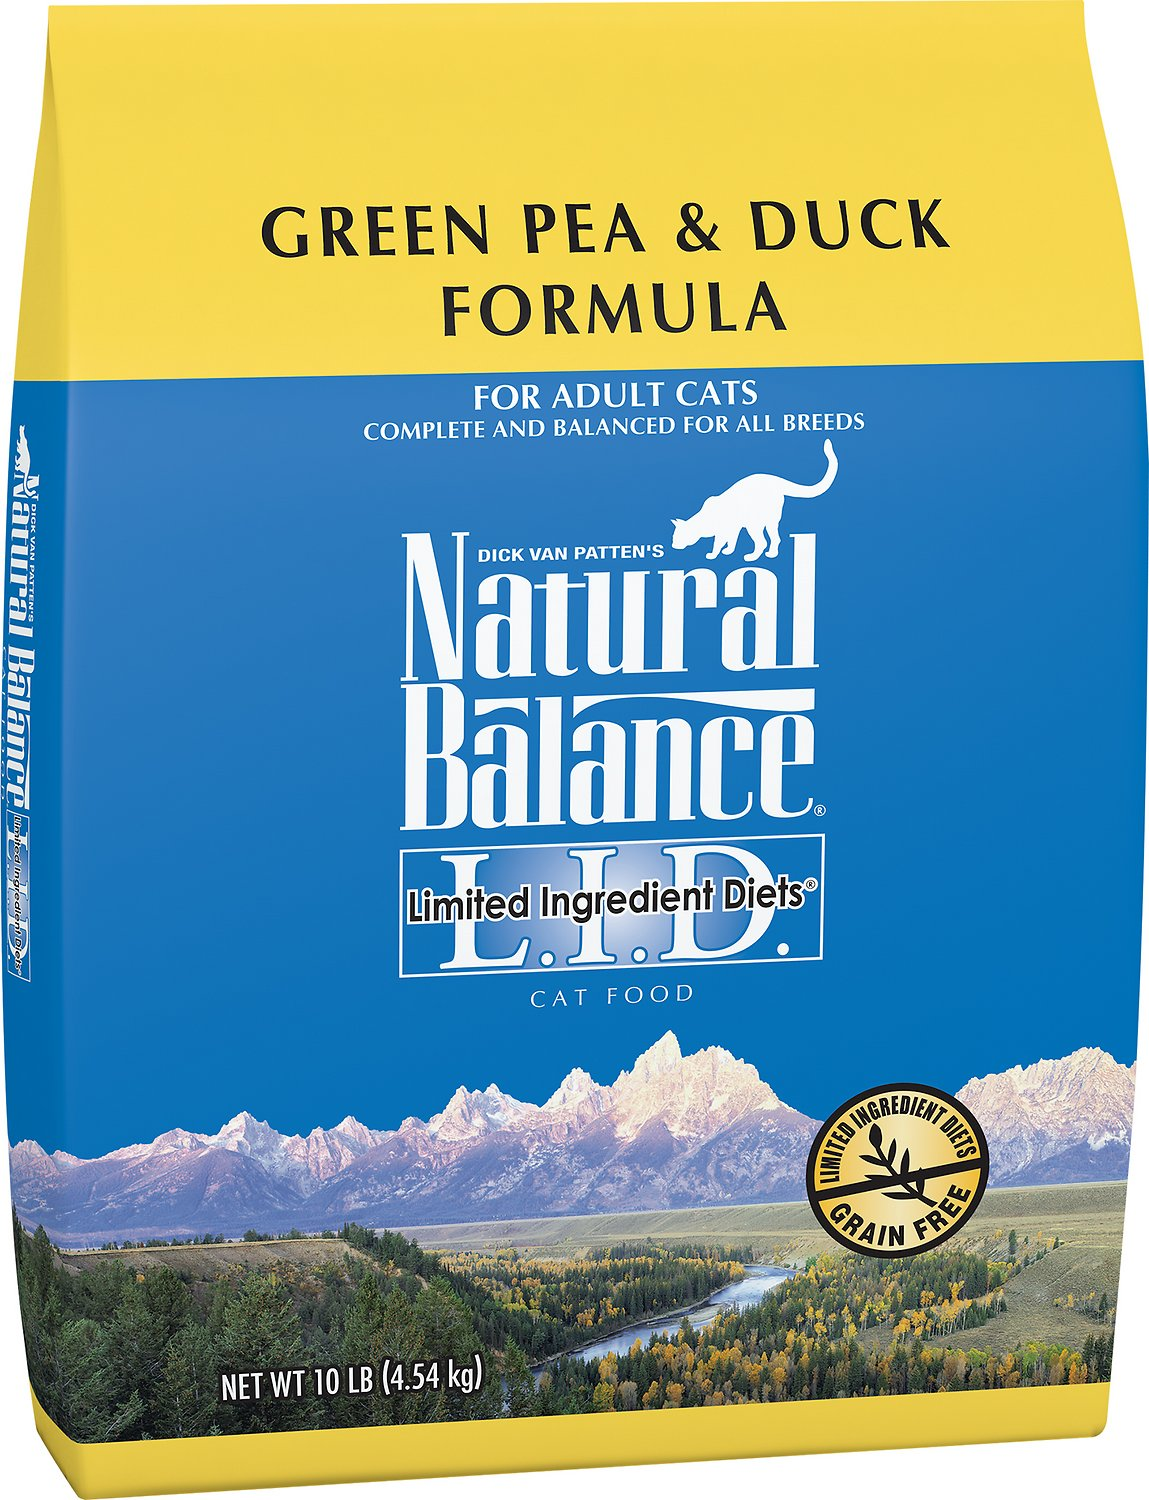 Natural Balance L.I.D. Limited Ingredient Diets Green Pea & Duck Formula Grain-Free Dry Cat Food Image